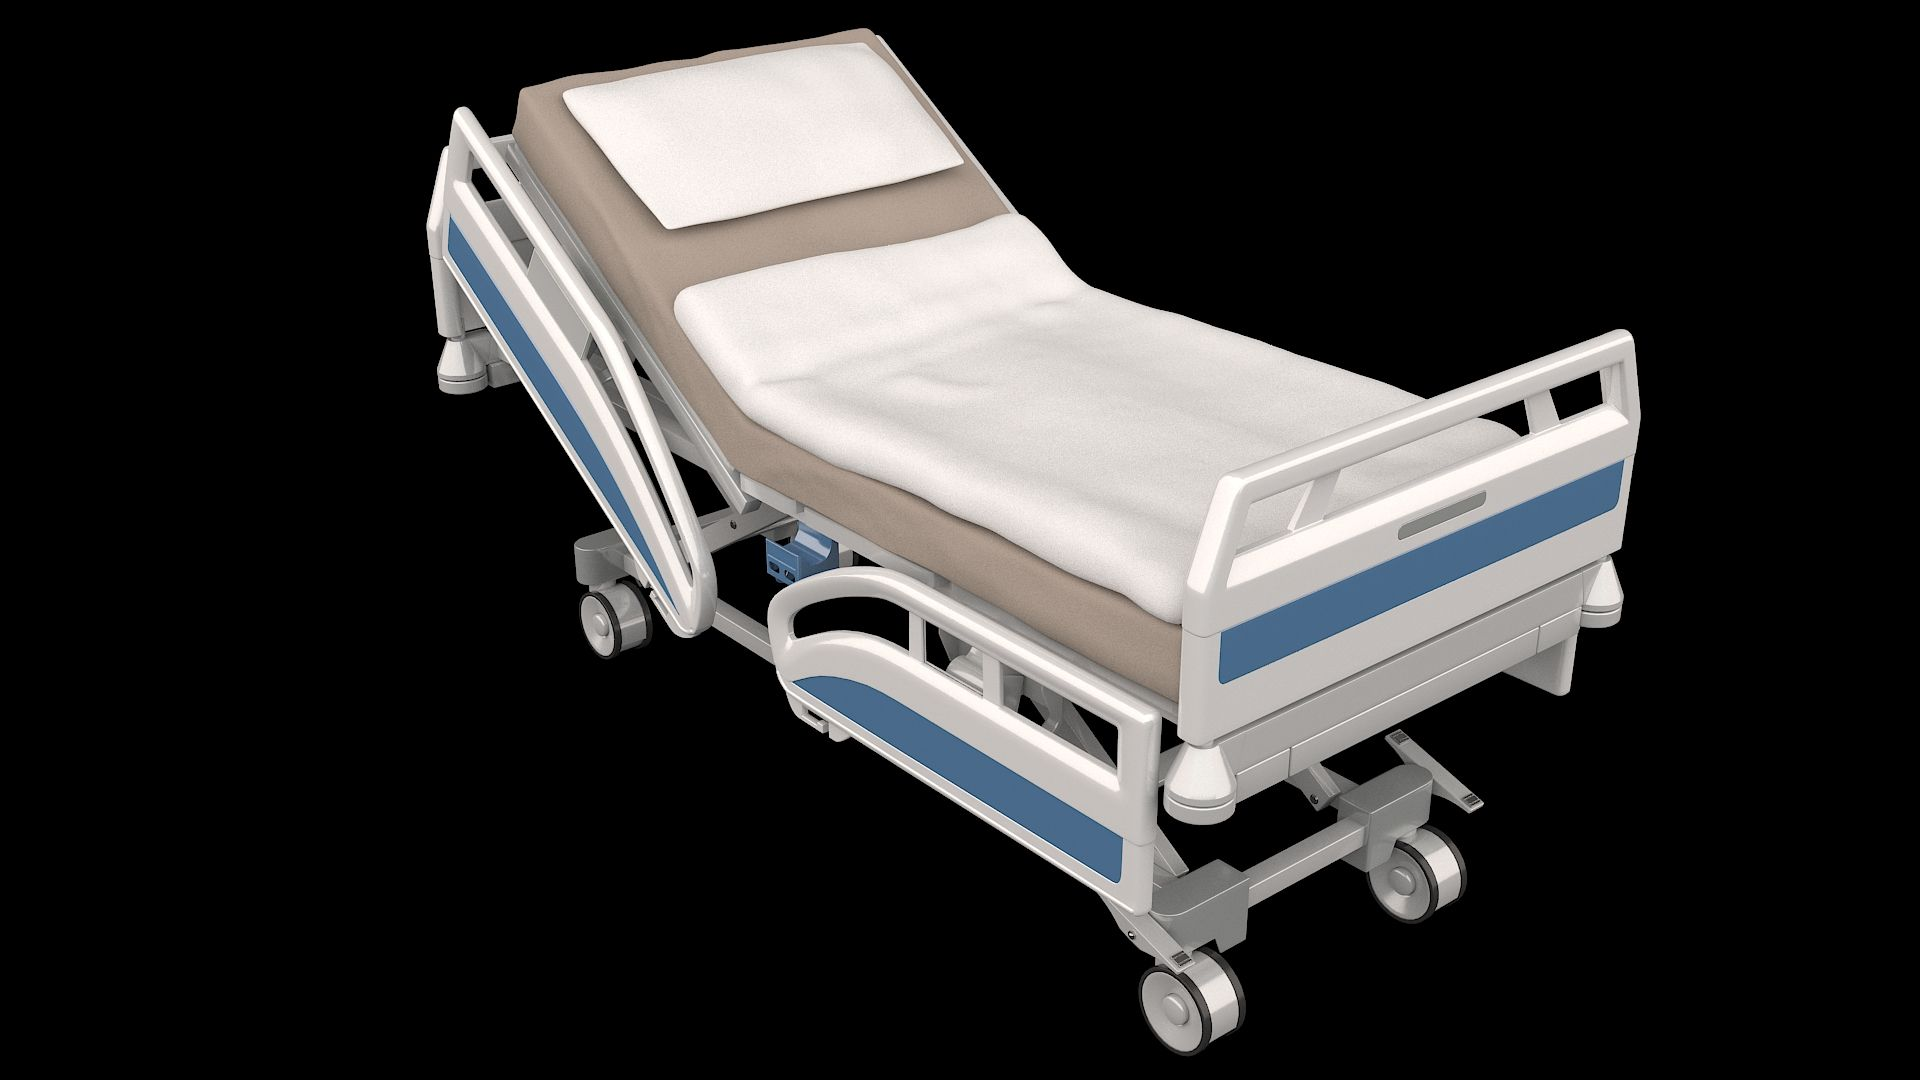 High detailed 3D model of a realistic hospital bed